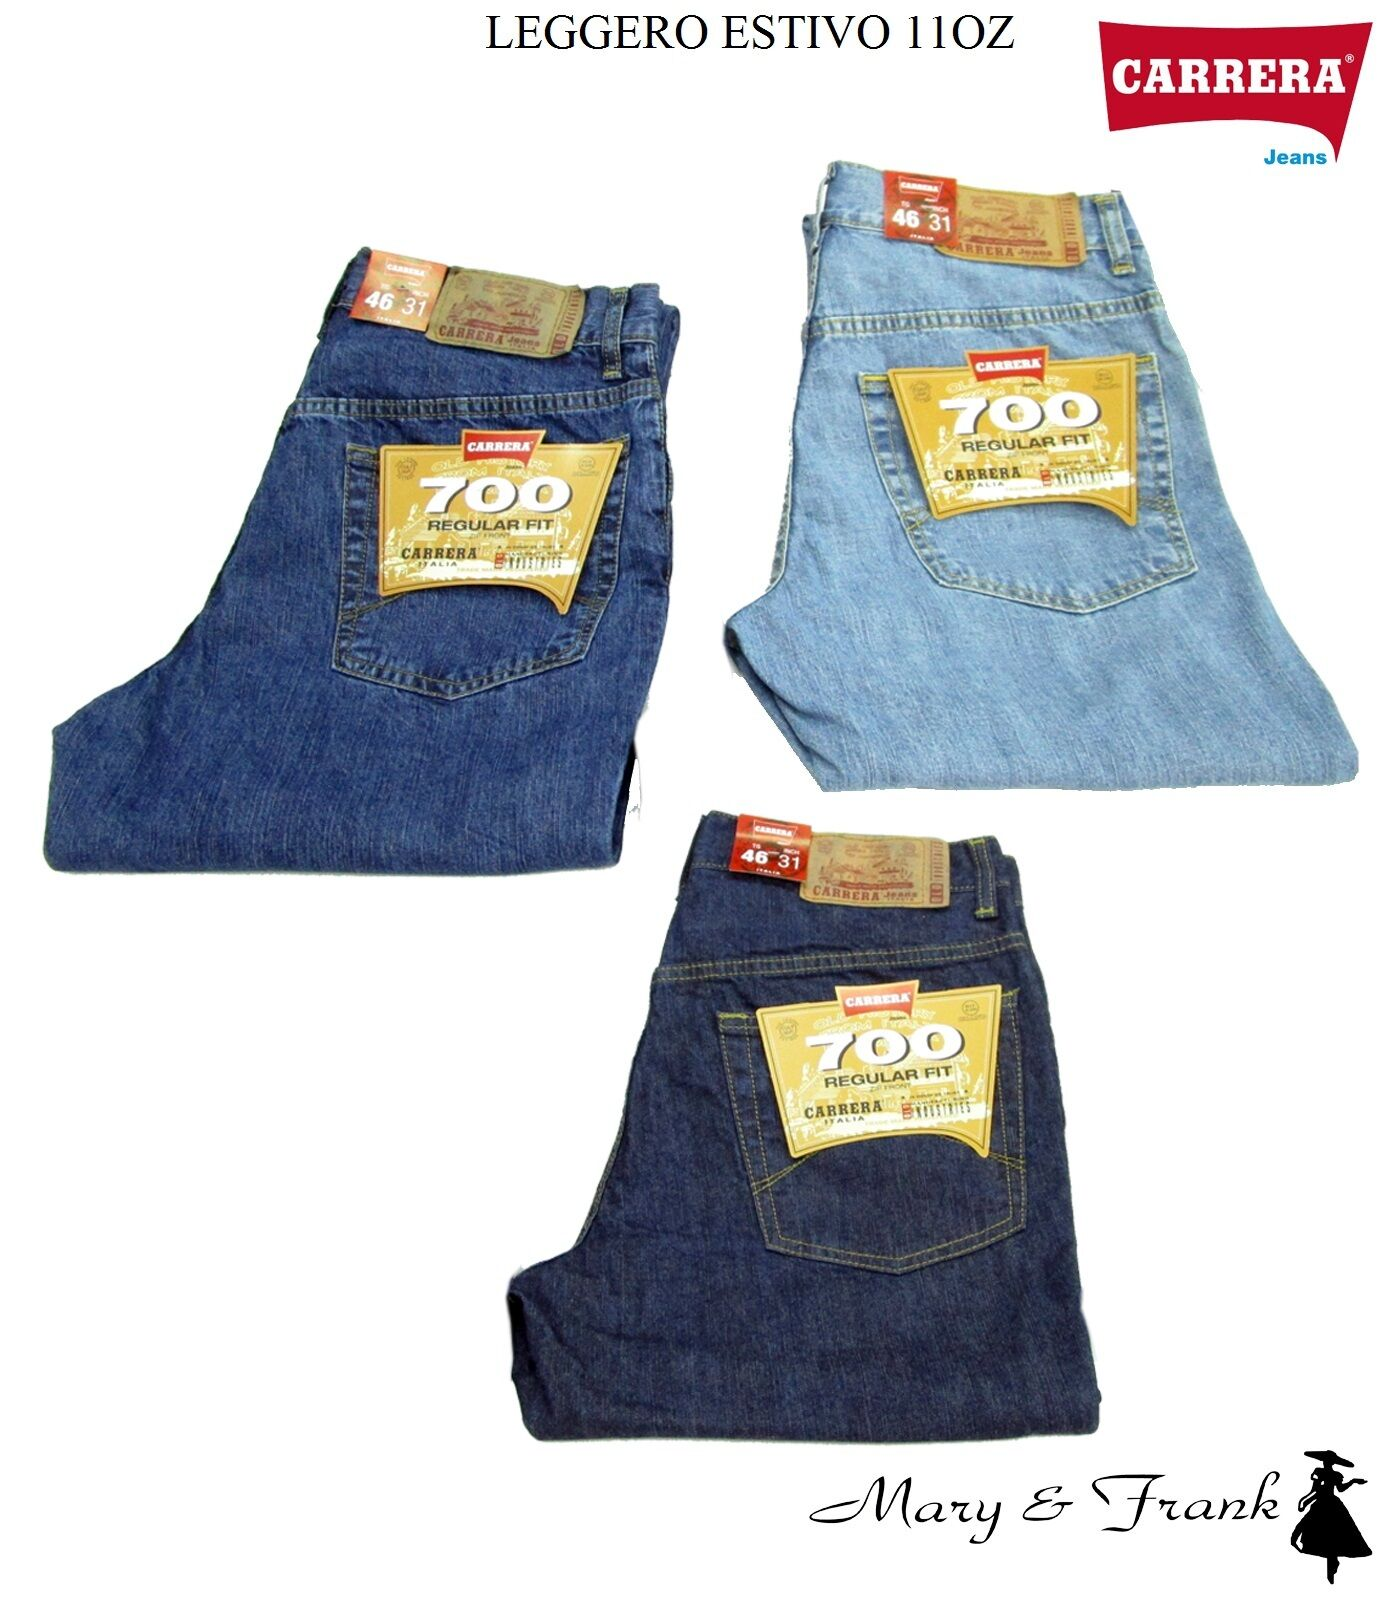 Jeans Uomo Carrera Art. 700 Estivo Leggero Regular Denim Tg. da 46 a 62